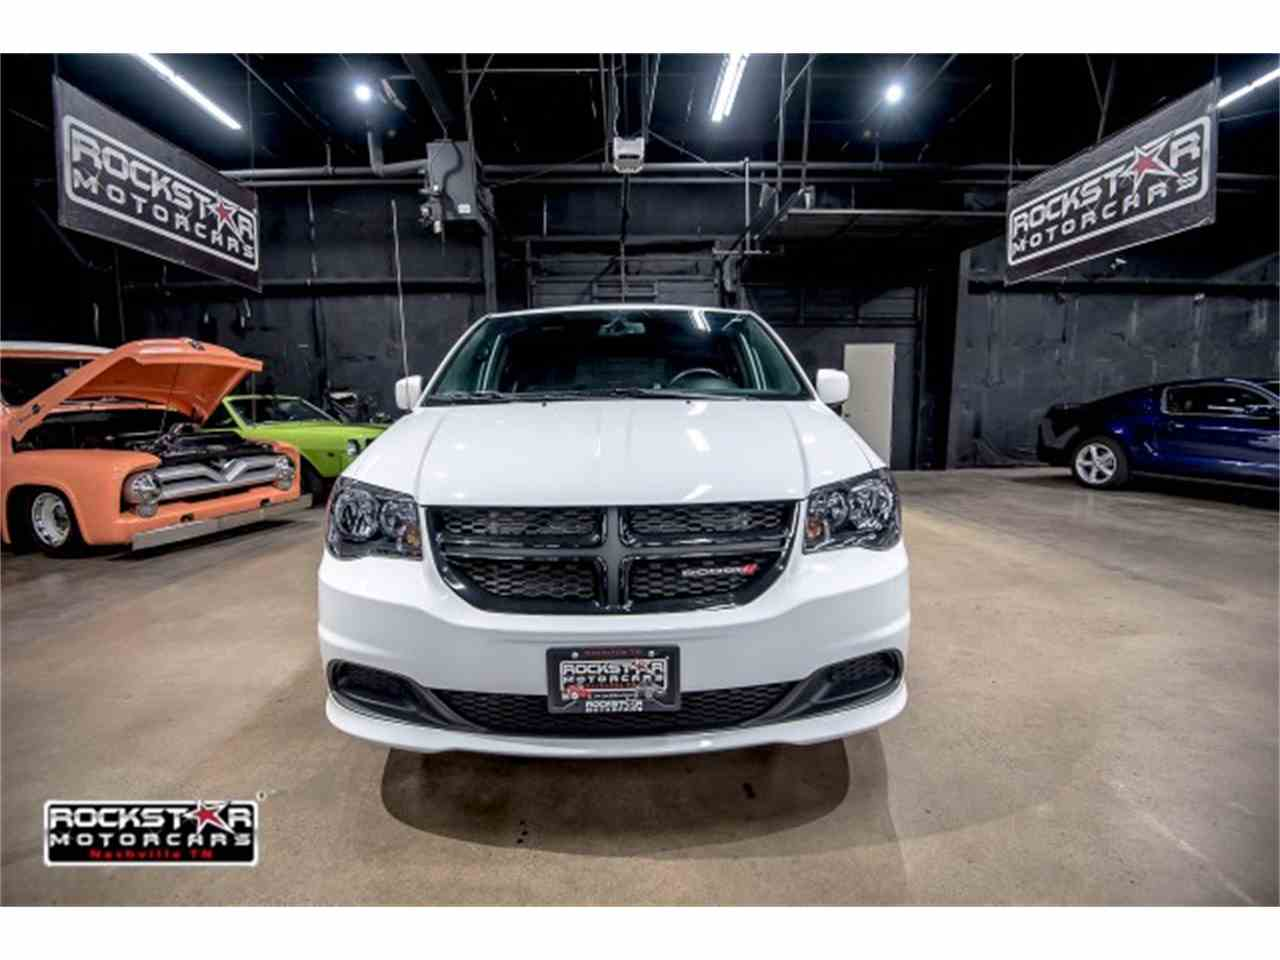 Large Picture of '14 Dodge Grand Caravan located in Tennessee - $15,550.00 Offered by Rockstar Motorcars - M2PQ